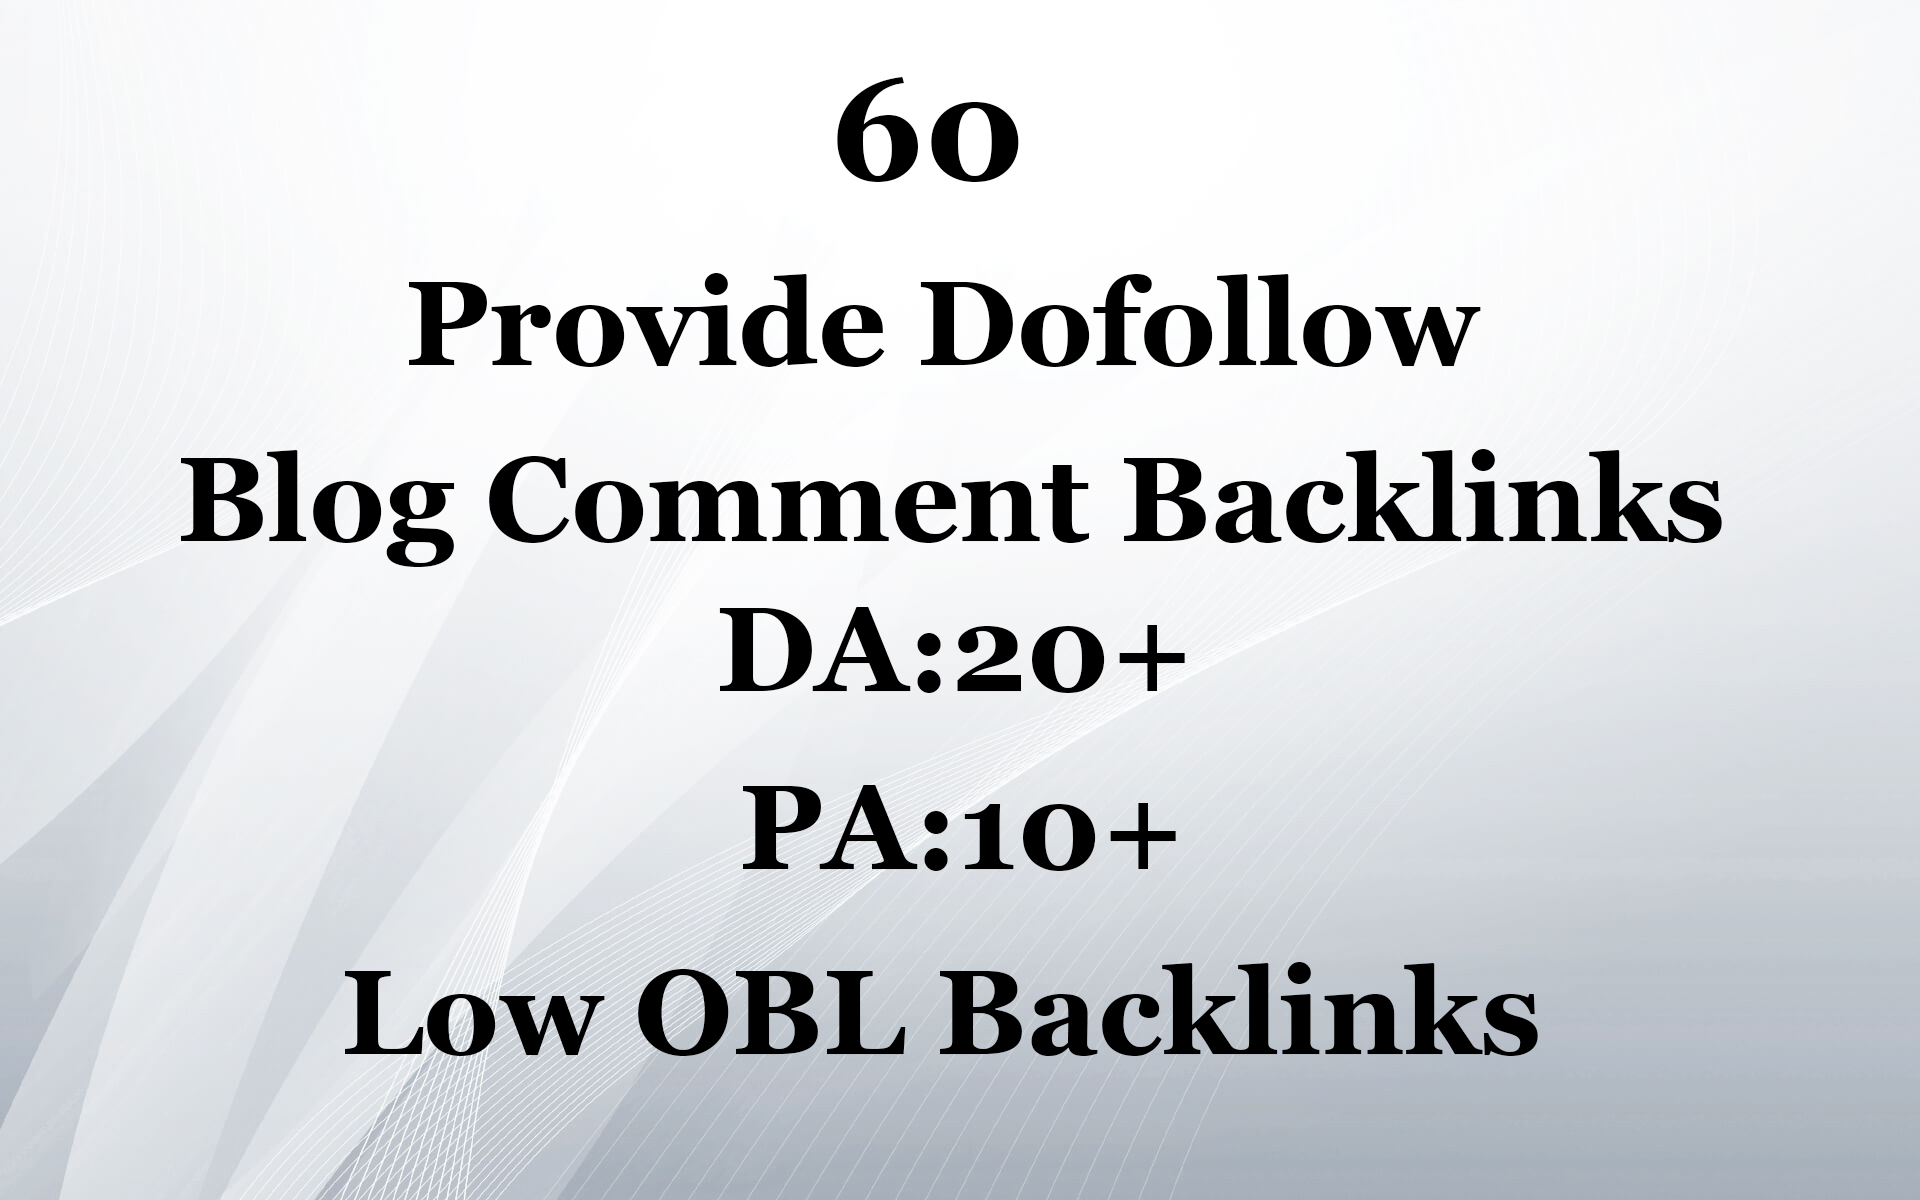 Provide 60 Dofollow Blog Comment Backlinks with High DA PA and Low OBL